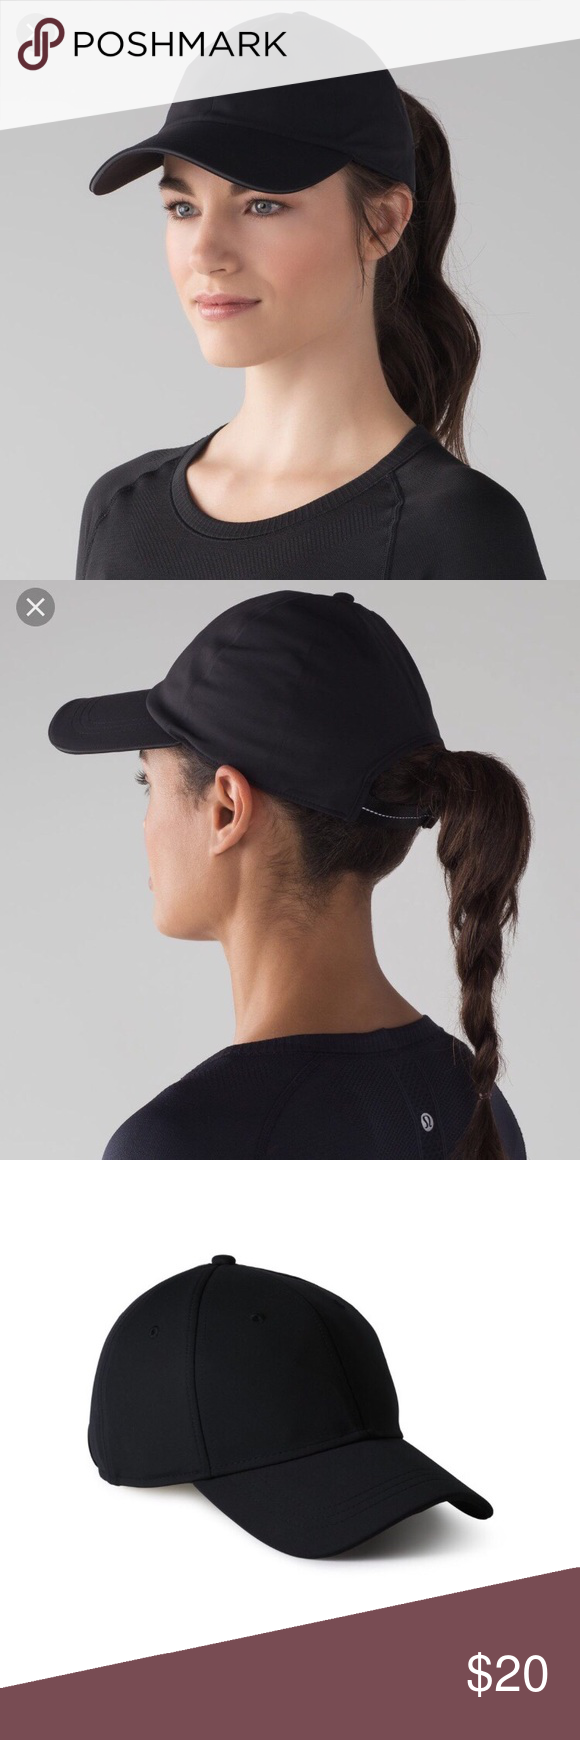 7173447a5bf Lululemon Black Baller Hat Lululemon Baller hat. Adjustable black ball cap  with sweat wicking and breathable fabric. lululemon athletica Accessories  Hats